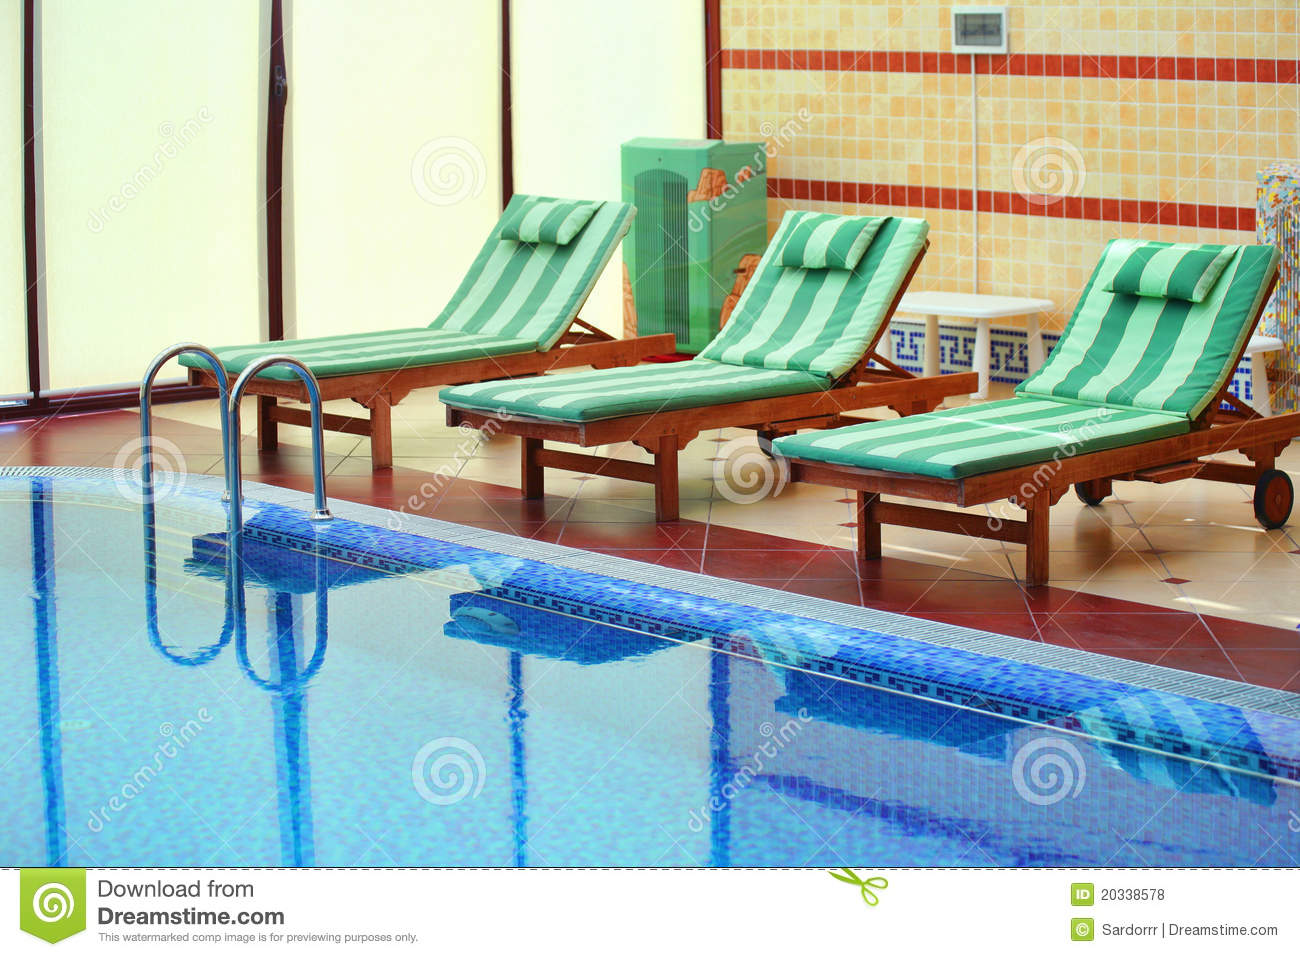 Tiled swimming pool with bed chairs royalty free stock for Swimming pool bed